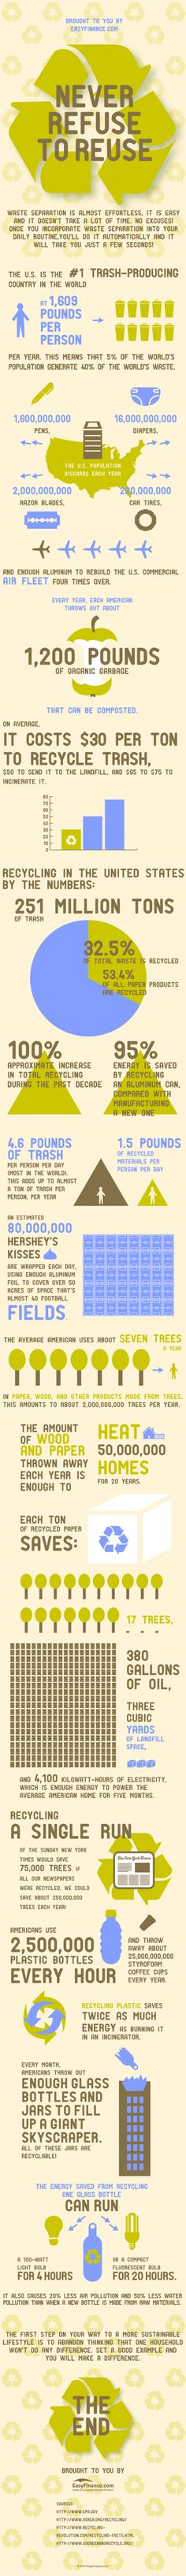 Never Refuse To Reuse! #Infographic  Yikes!!!  There's no reason not to reduce, reuse, or recycle!